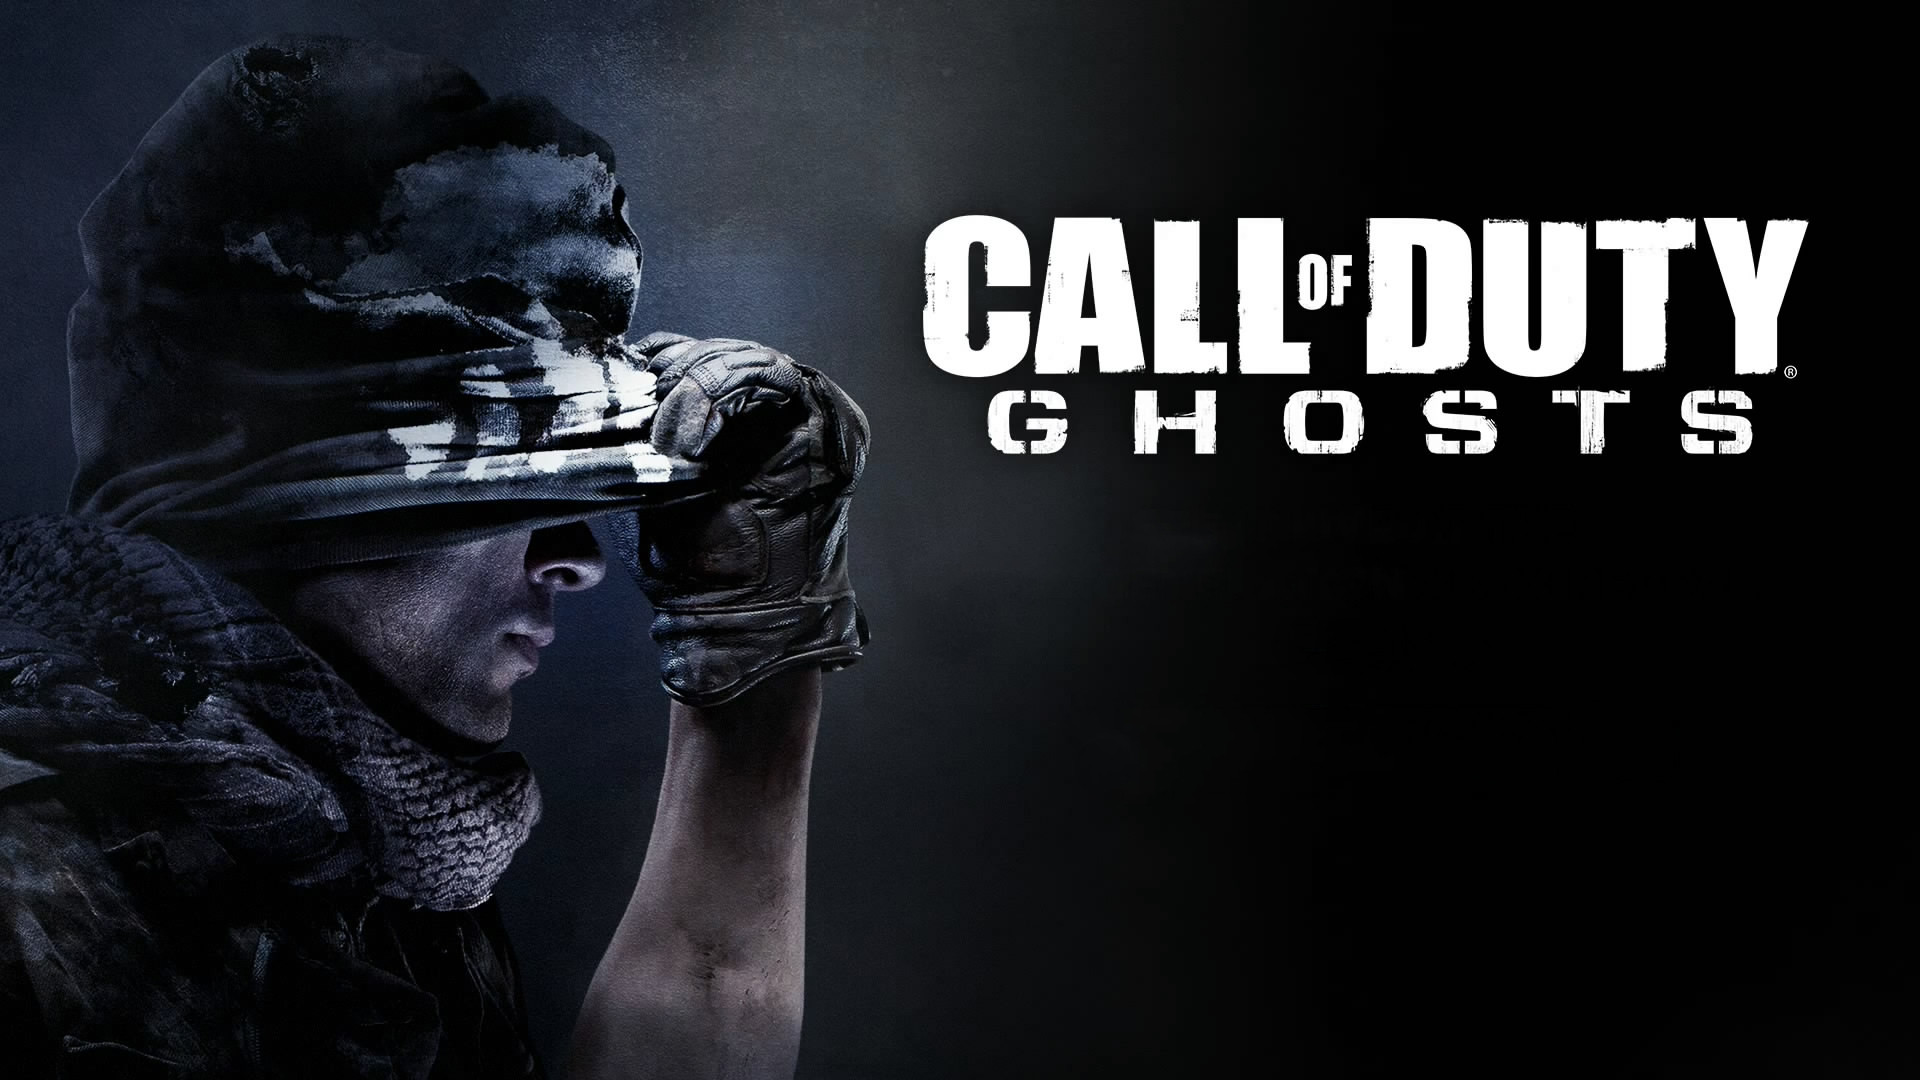 Gaming wallpaper games call of duty ghosts